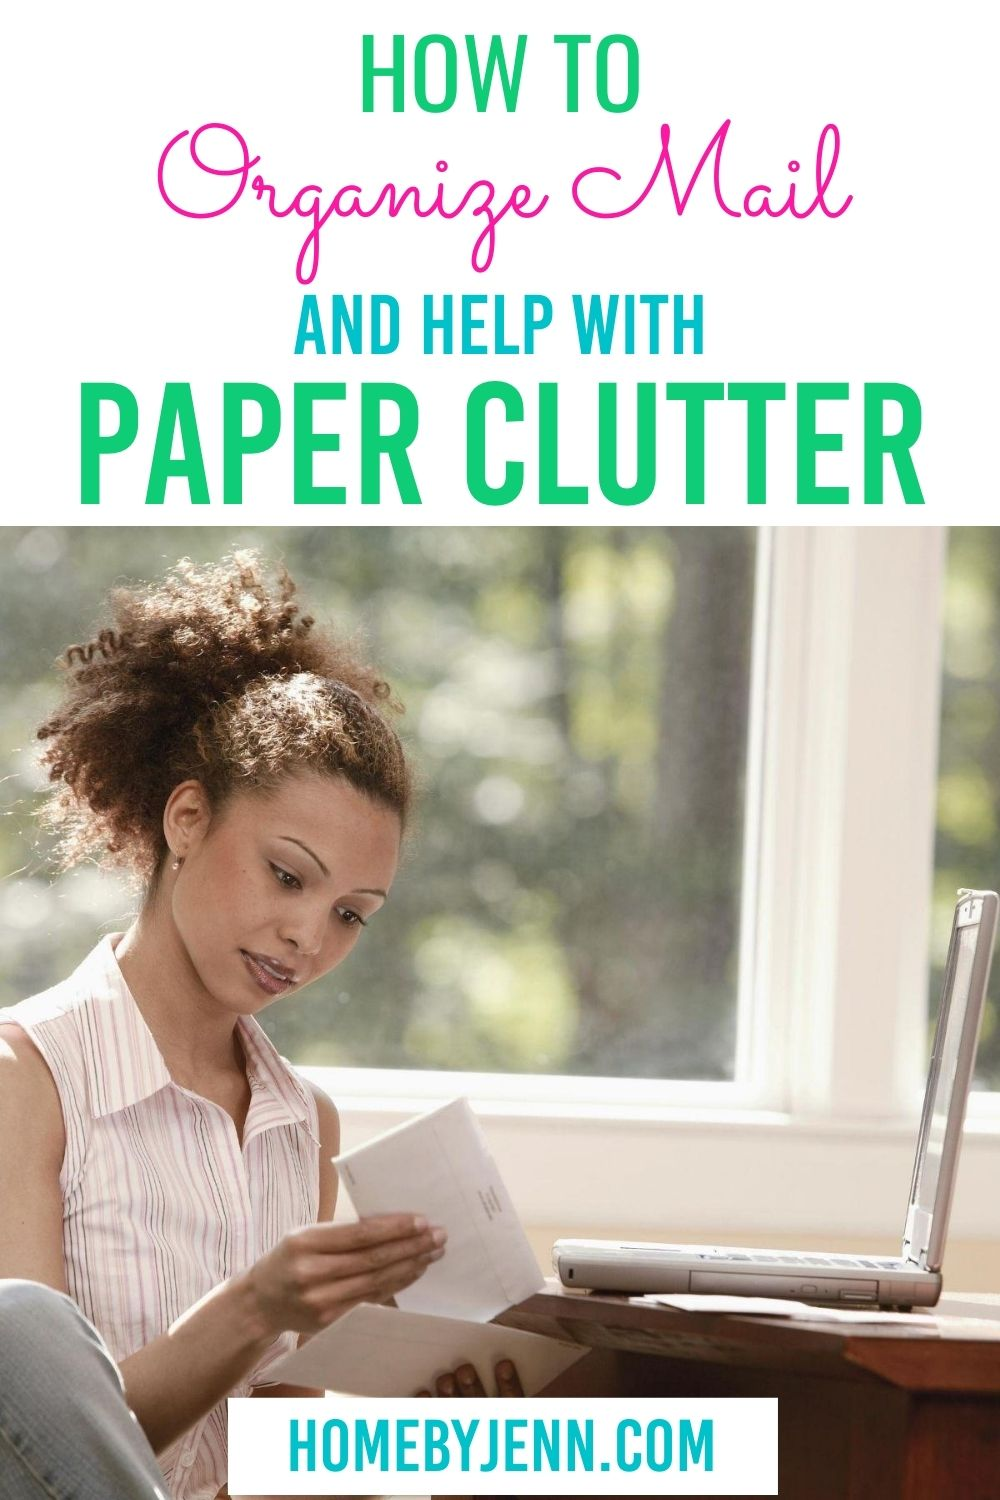 Learn how to organizing mail to help reduce paper clutter in your home. #organize #paperclutter #declutter #organizepaper #organizemail #declutteringtips #howto via @homebyjenn